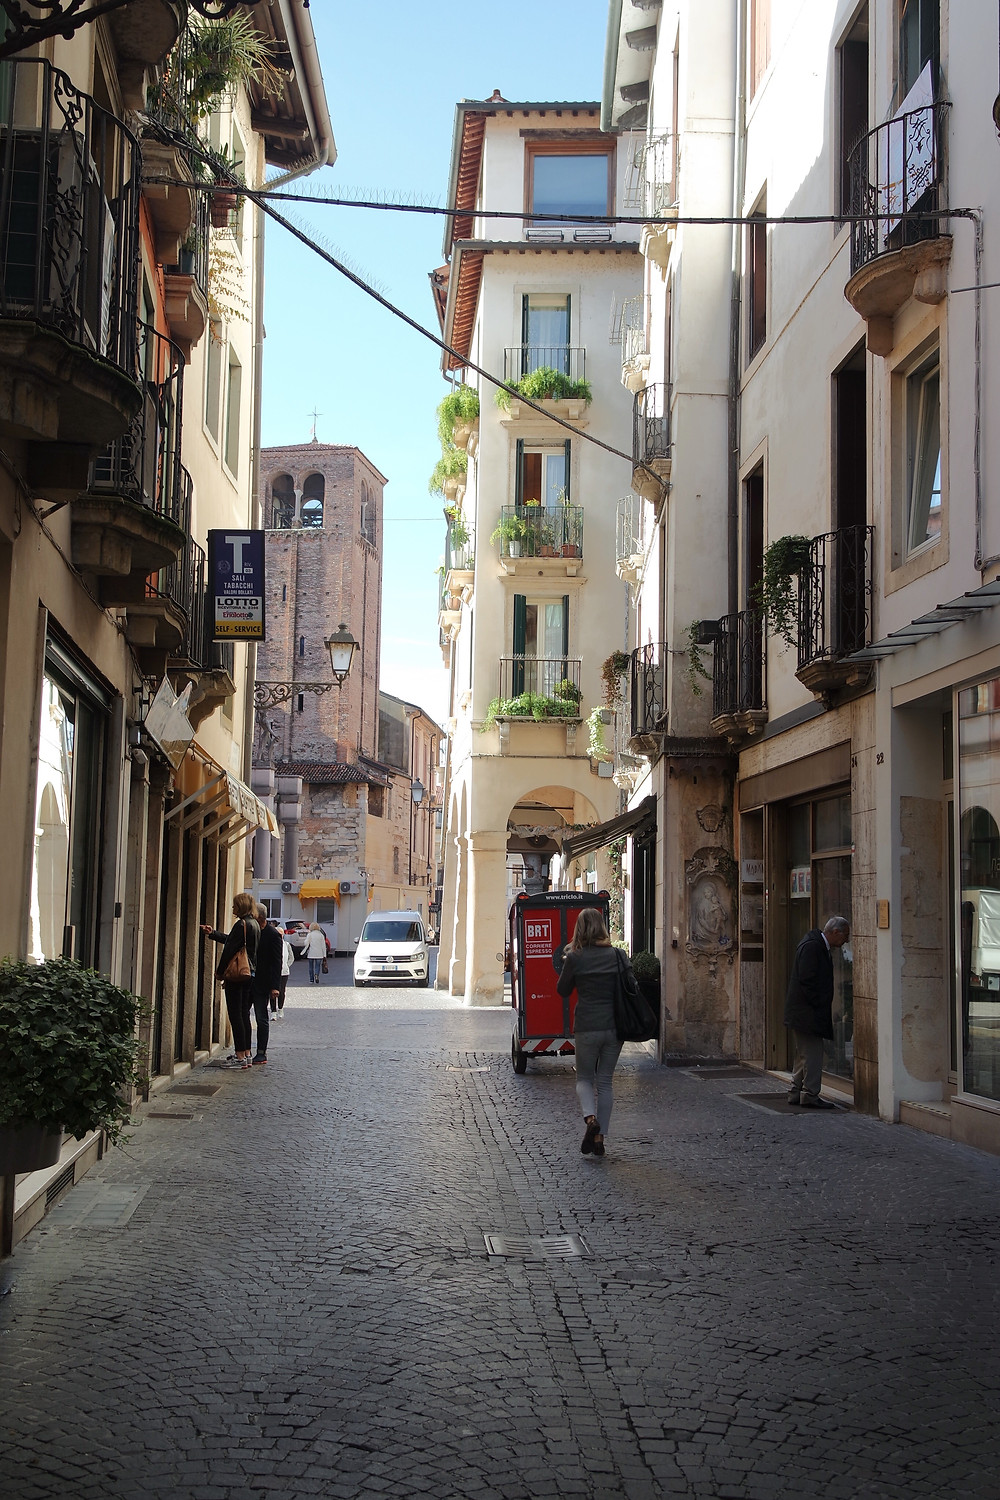 Narrow street in Vicenza on a sunny day.